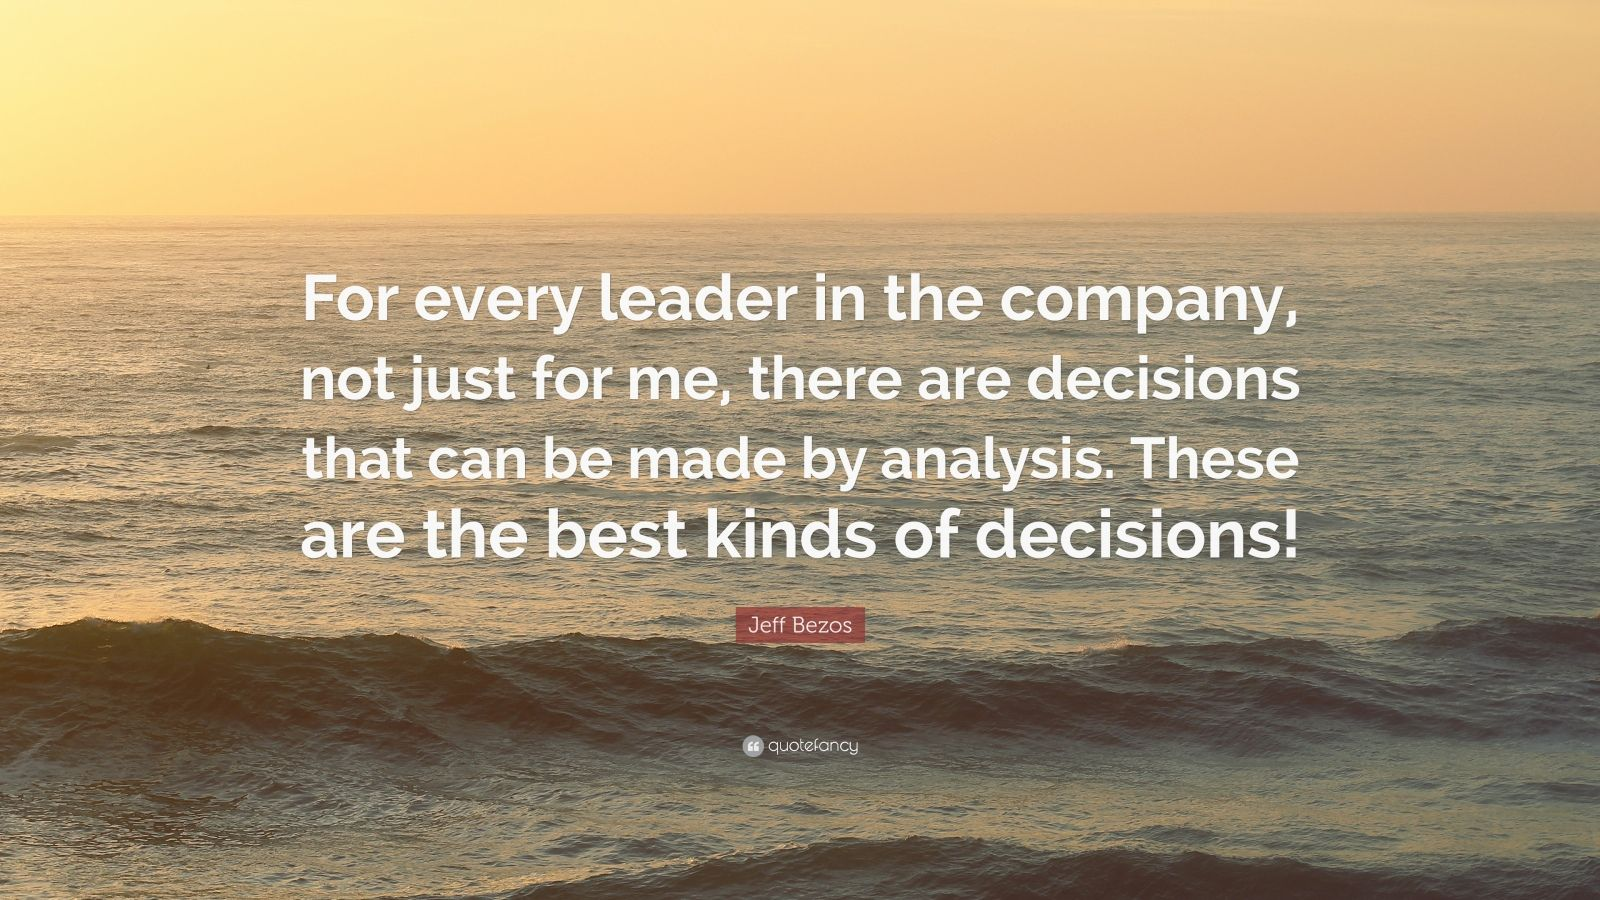 "Jeff Bezos Quote: ""For every leader in the company, not just for me, there are decisions that can be made by analysis. These are the best kinds of decisions!"""